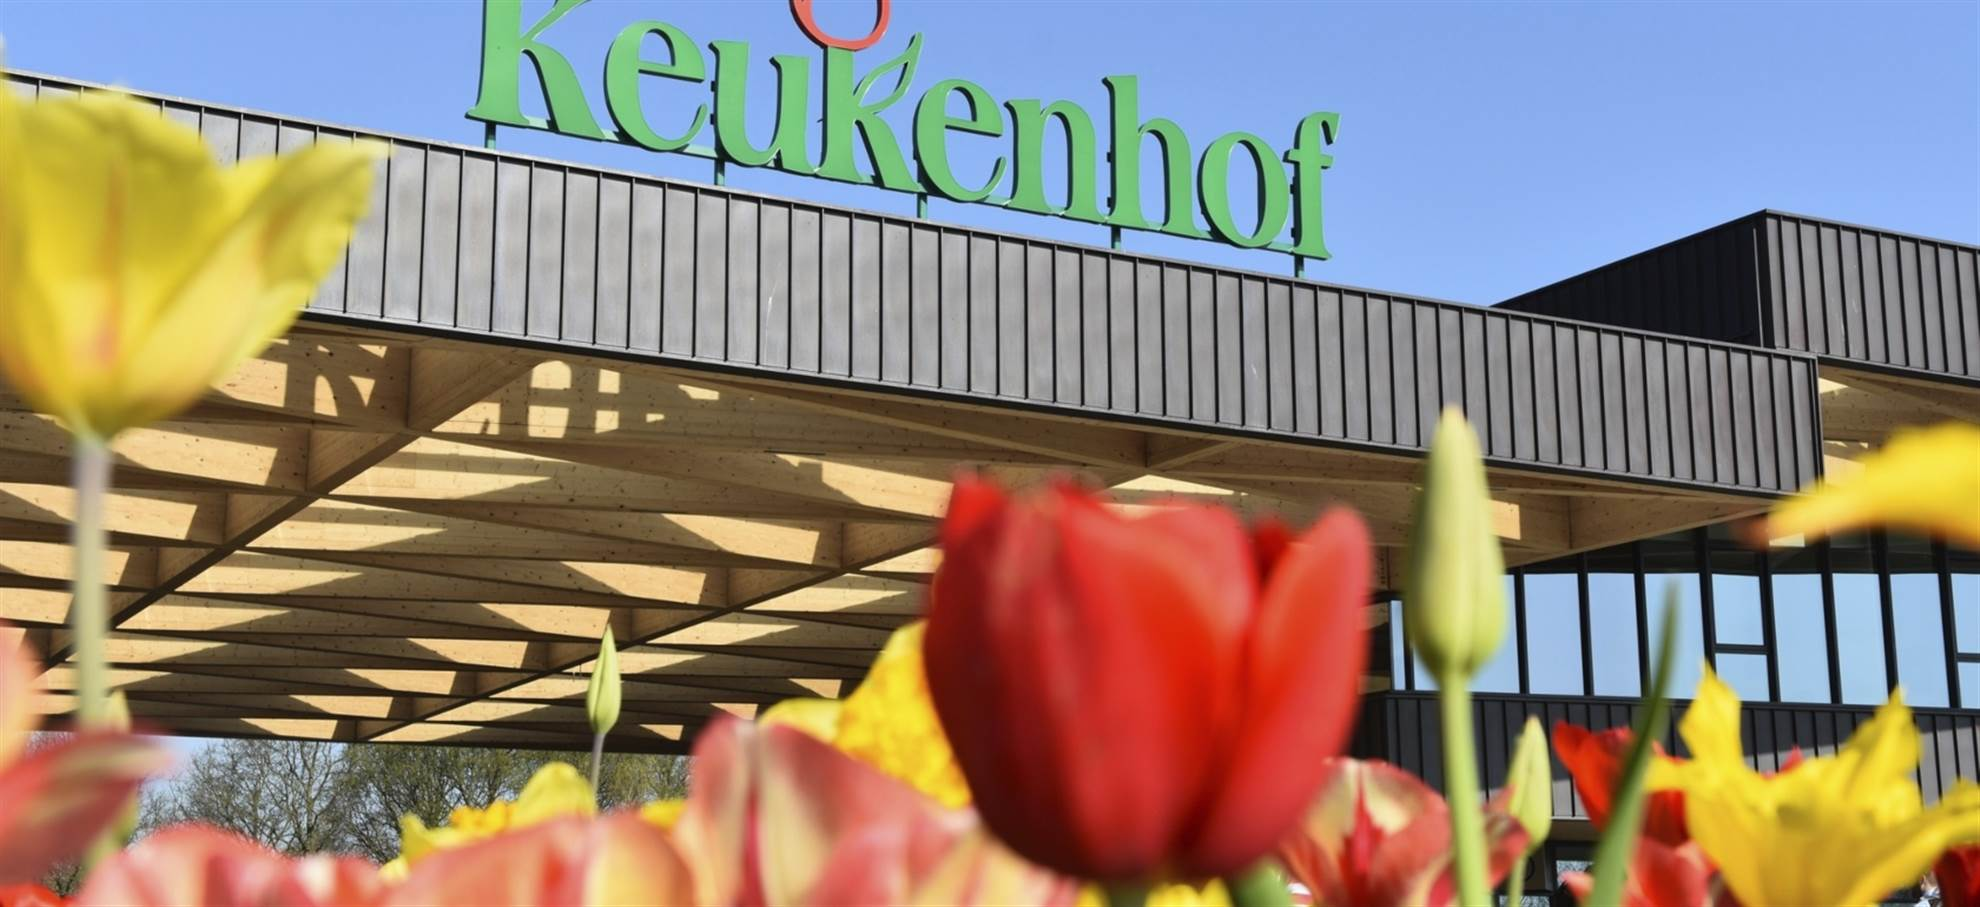 Keukenhof Tour from Rotterdam (Active and Bookable)